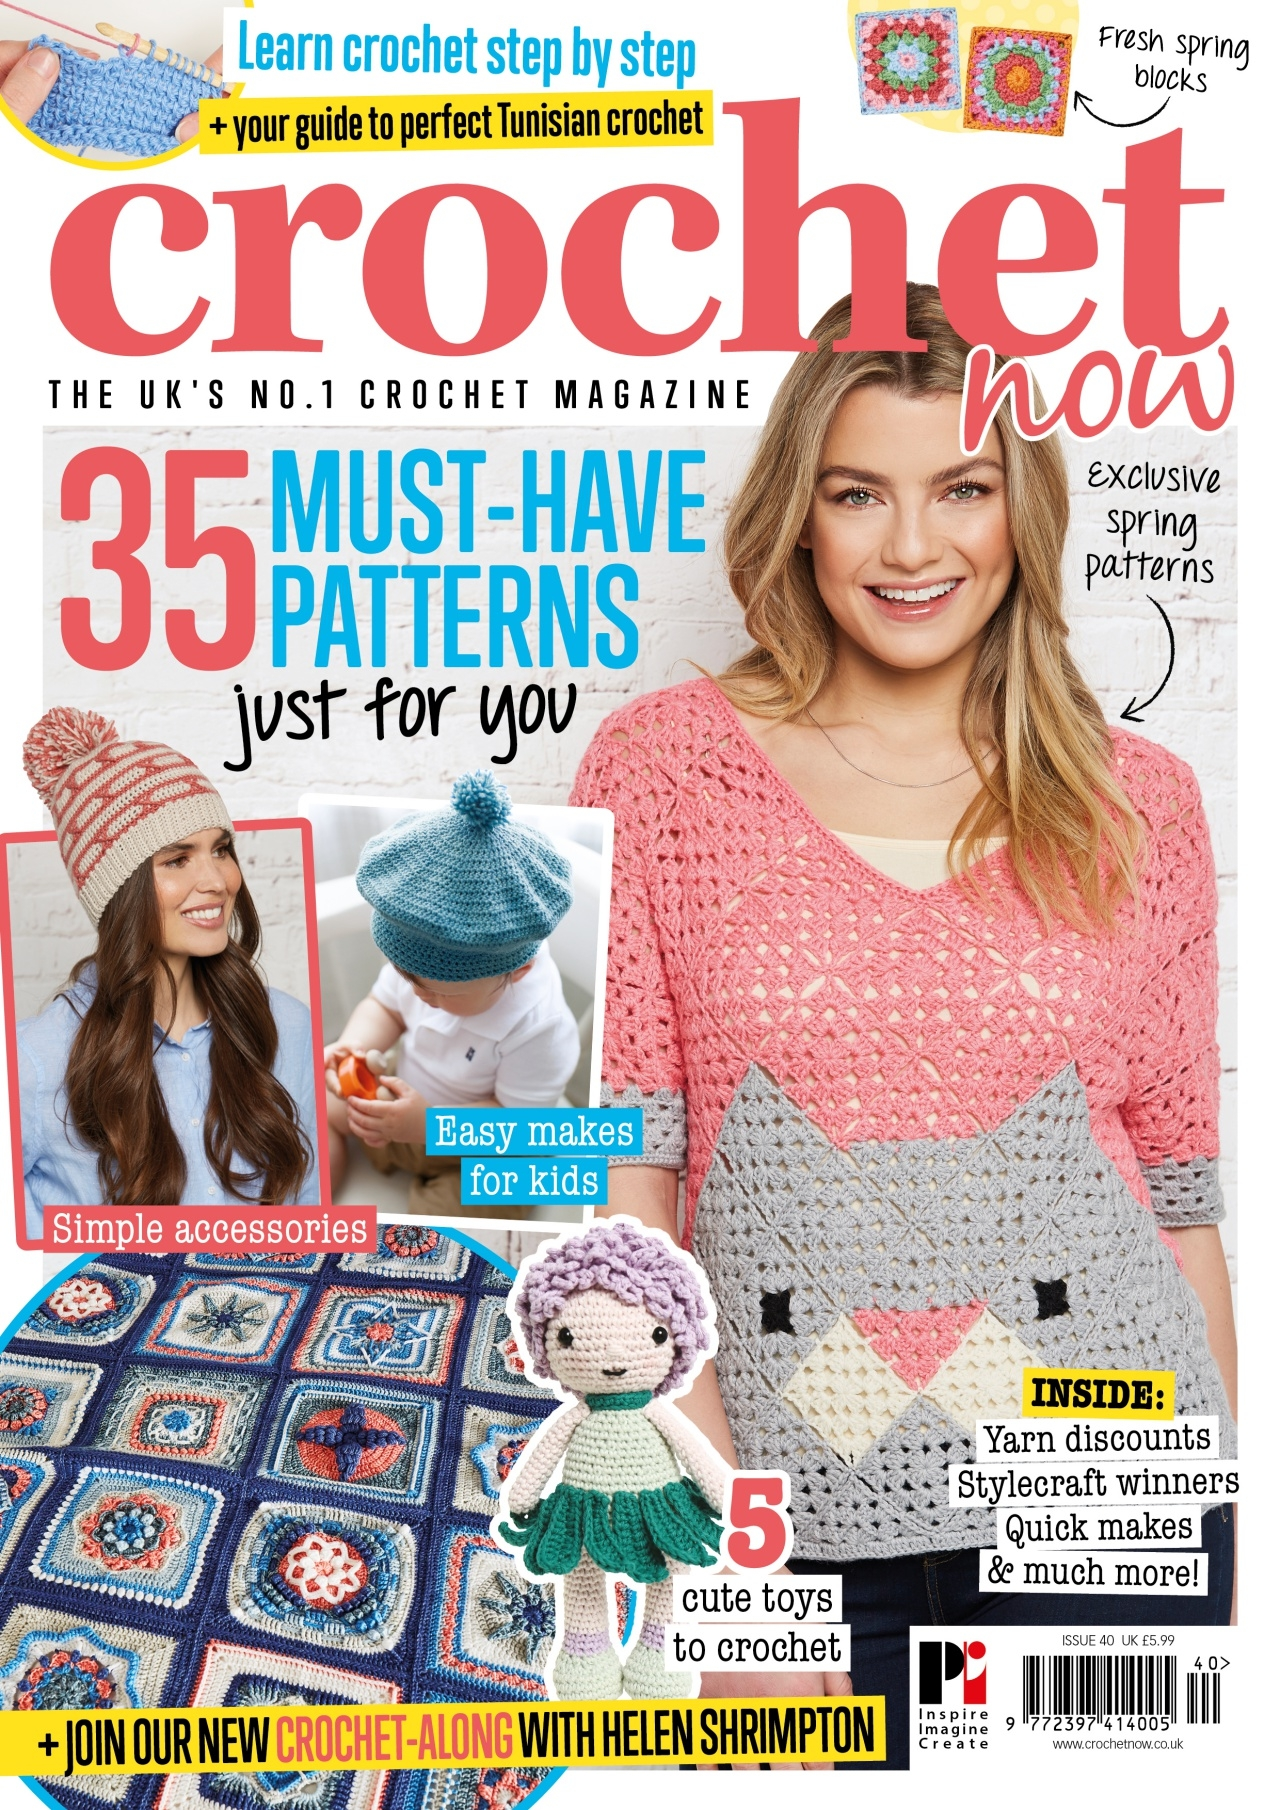 Crochet Now issue 40